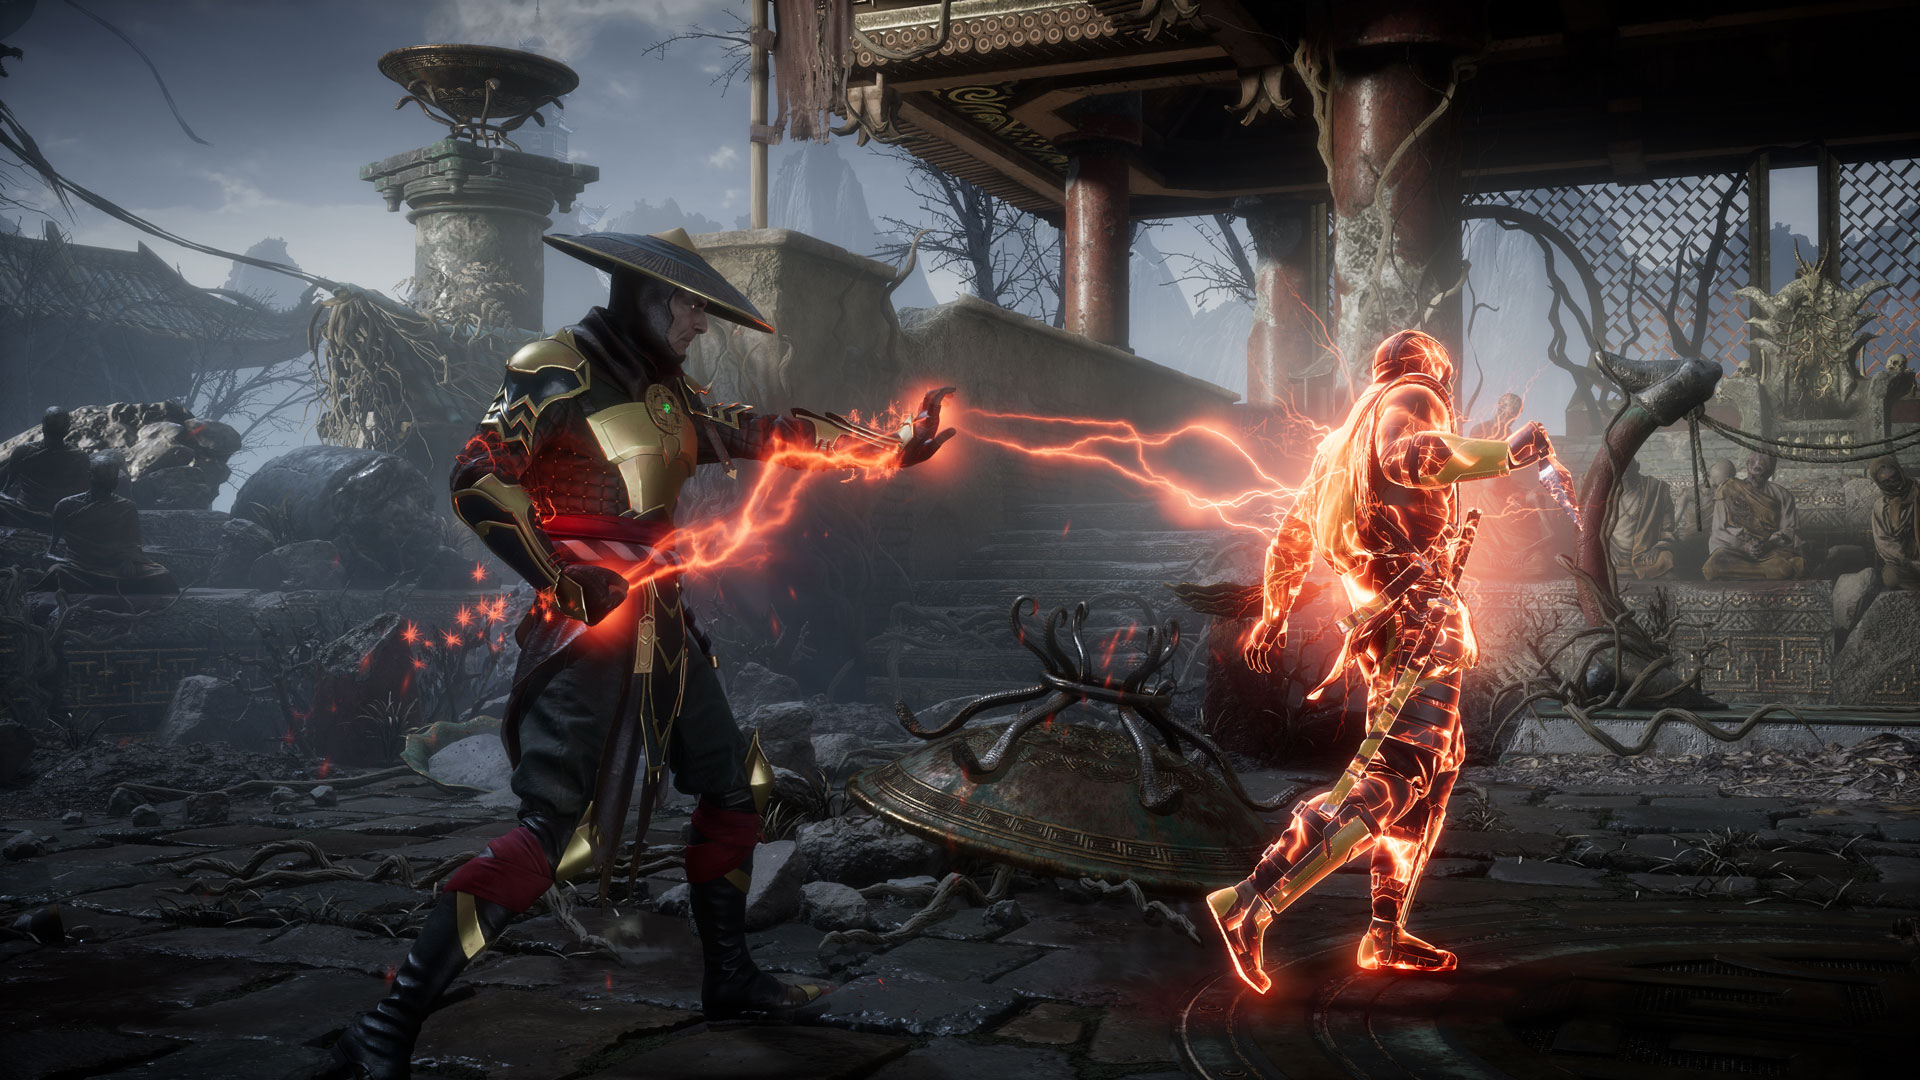 MORTAL KOMBAT 11 PREMIUM LICENSE KEY FOR STEAM